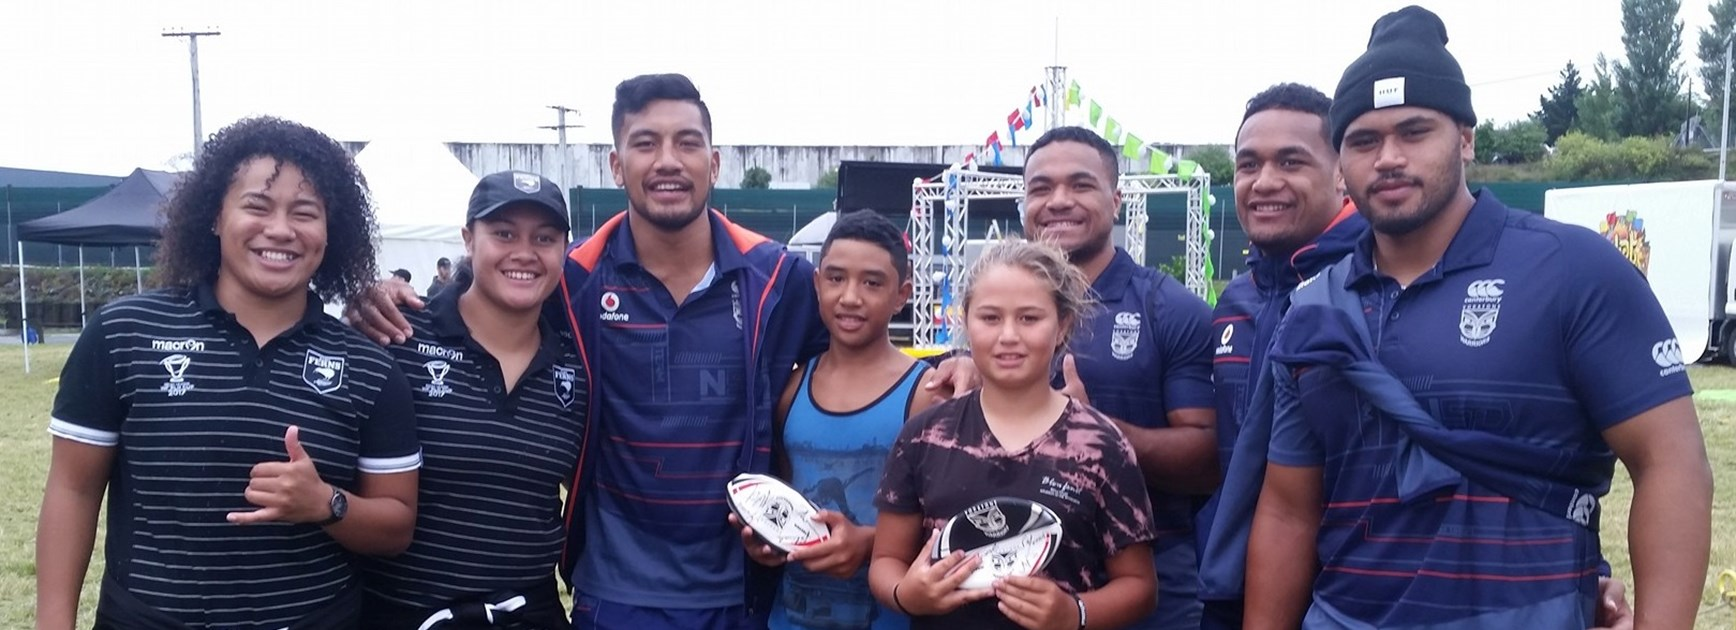 Vodafone Warriors appear at club registration days